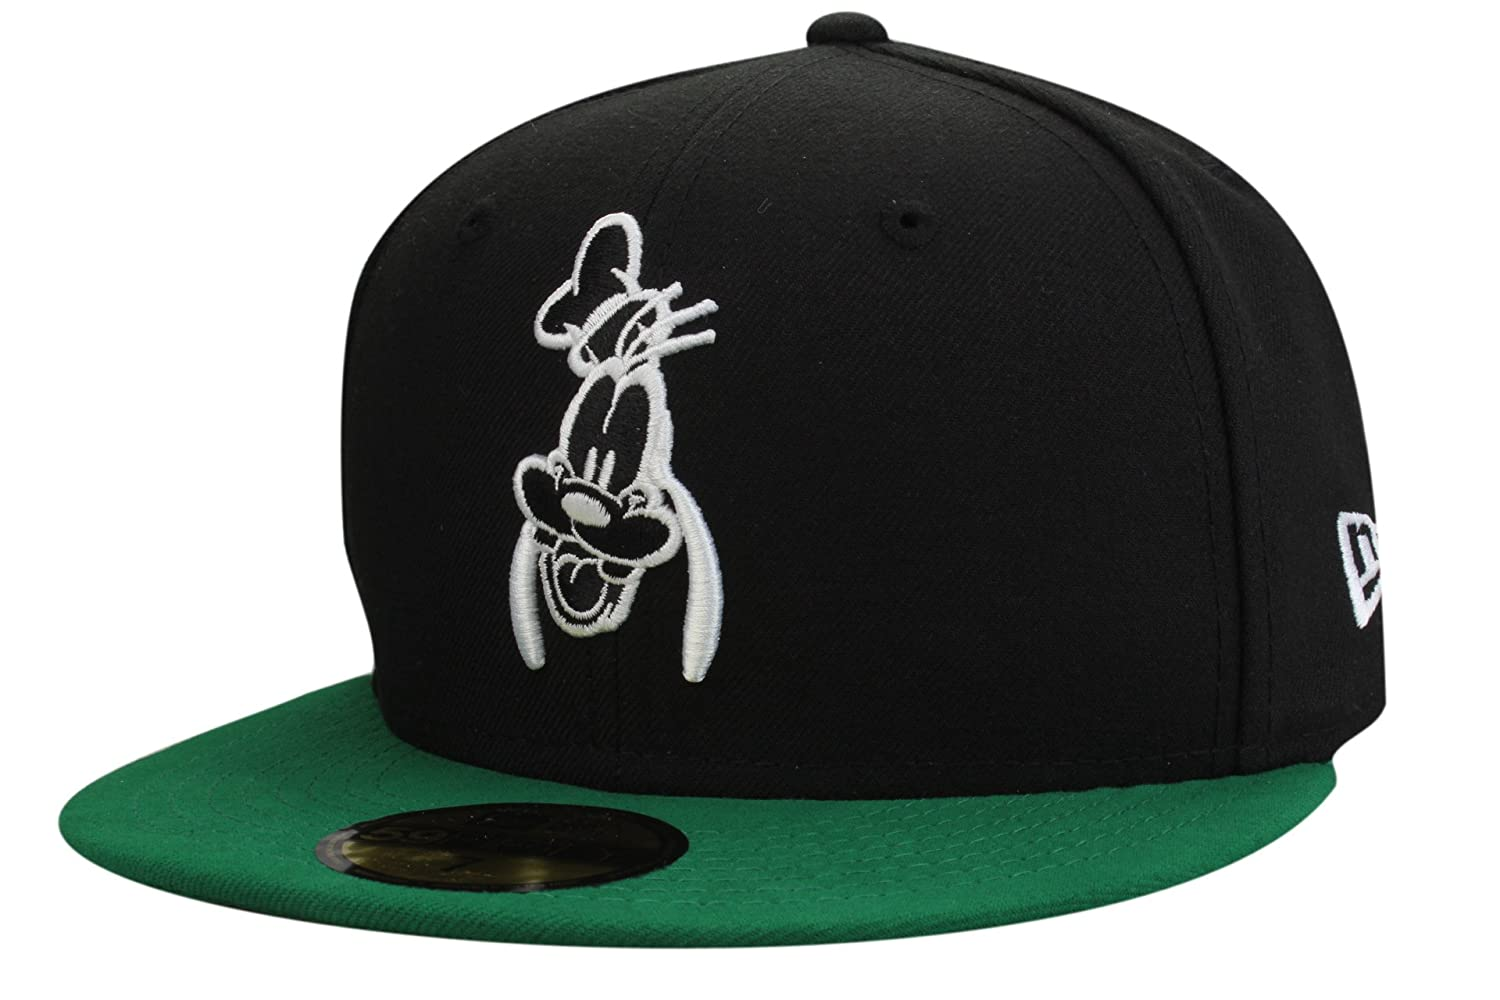 61715fc0f88 Disney Goofy Cap from New Era - Collection  Basic in Black Green ...